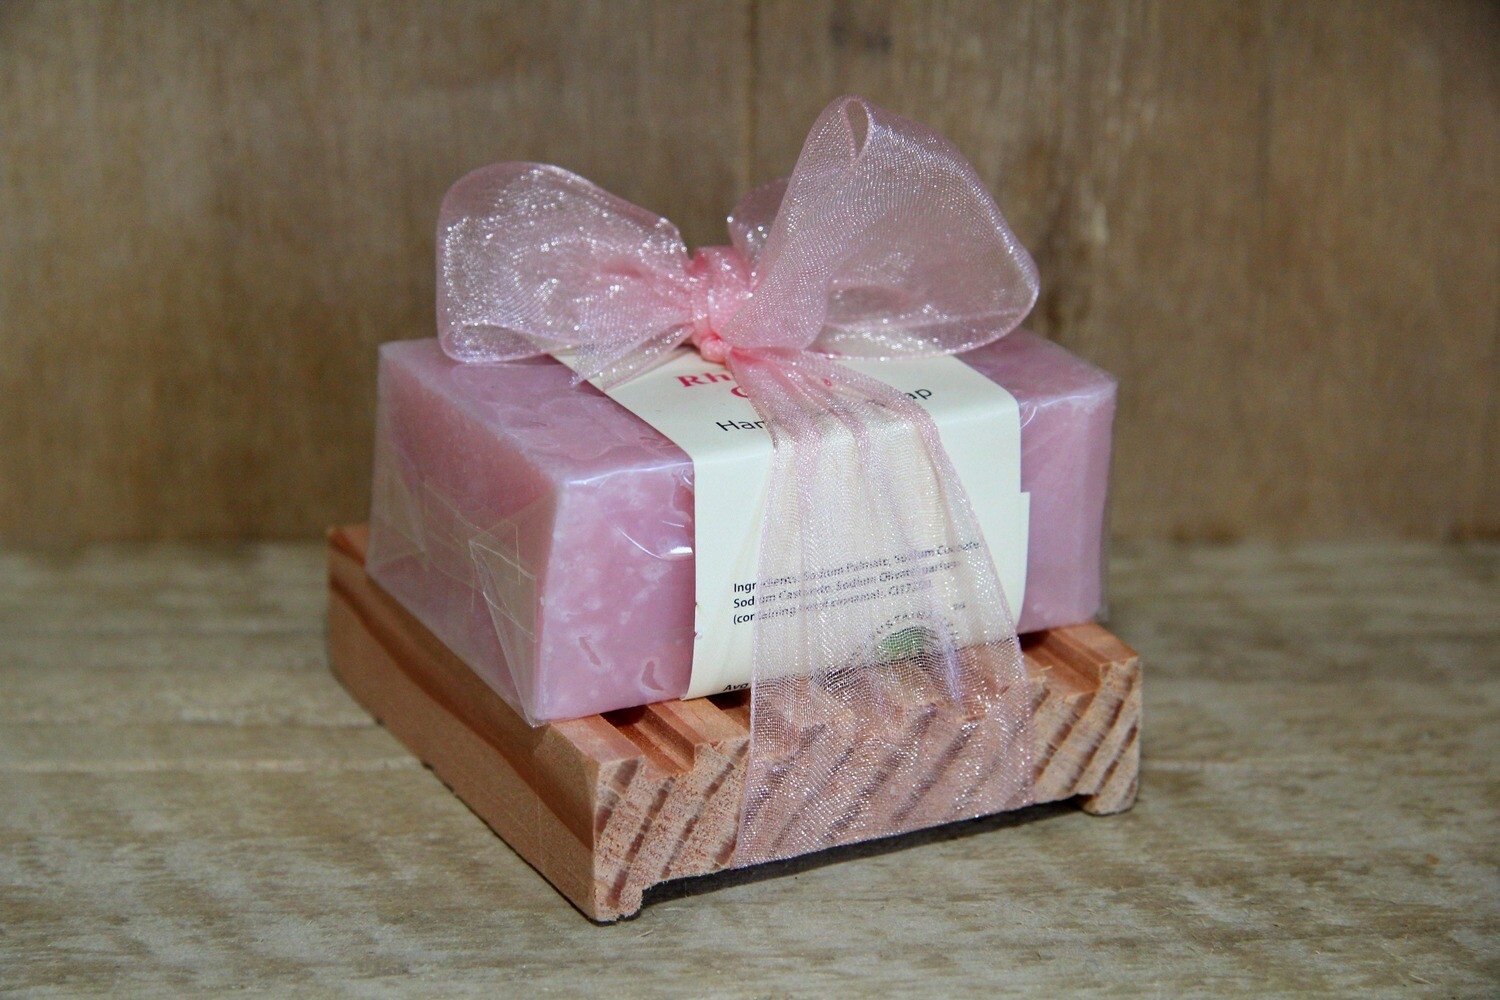 Rhubarb crush soap bar & dish